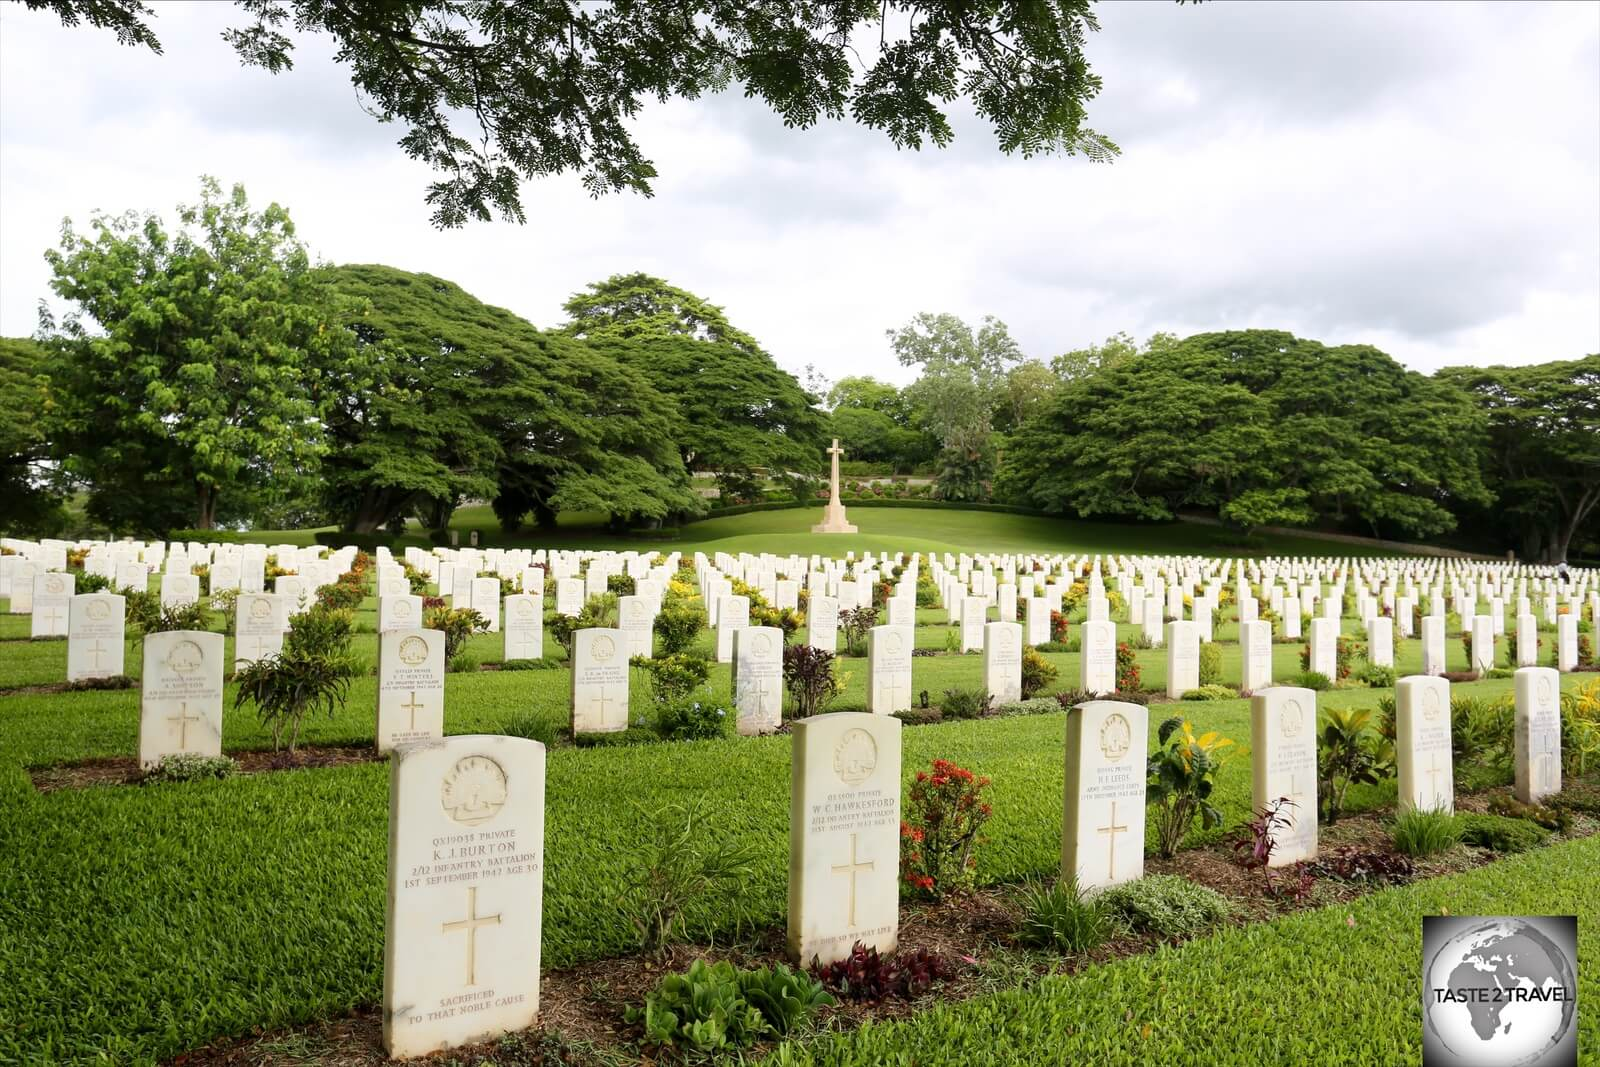 The beautifully maintained Bomana War Cemetery is the final resting place of 3,824 Commonwealth soldiers who died during WWII.